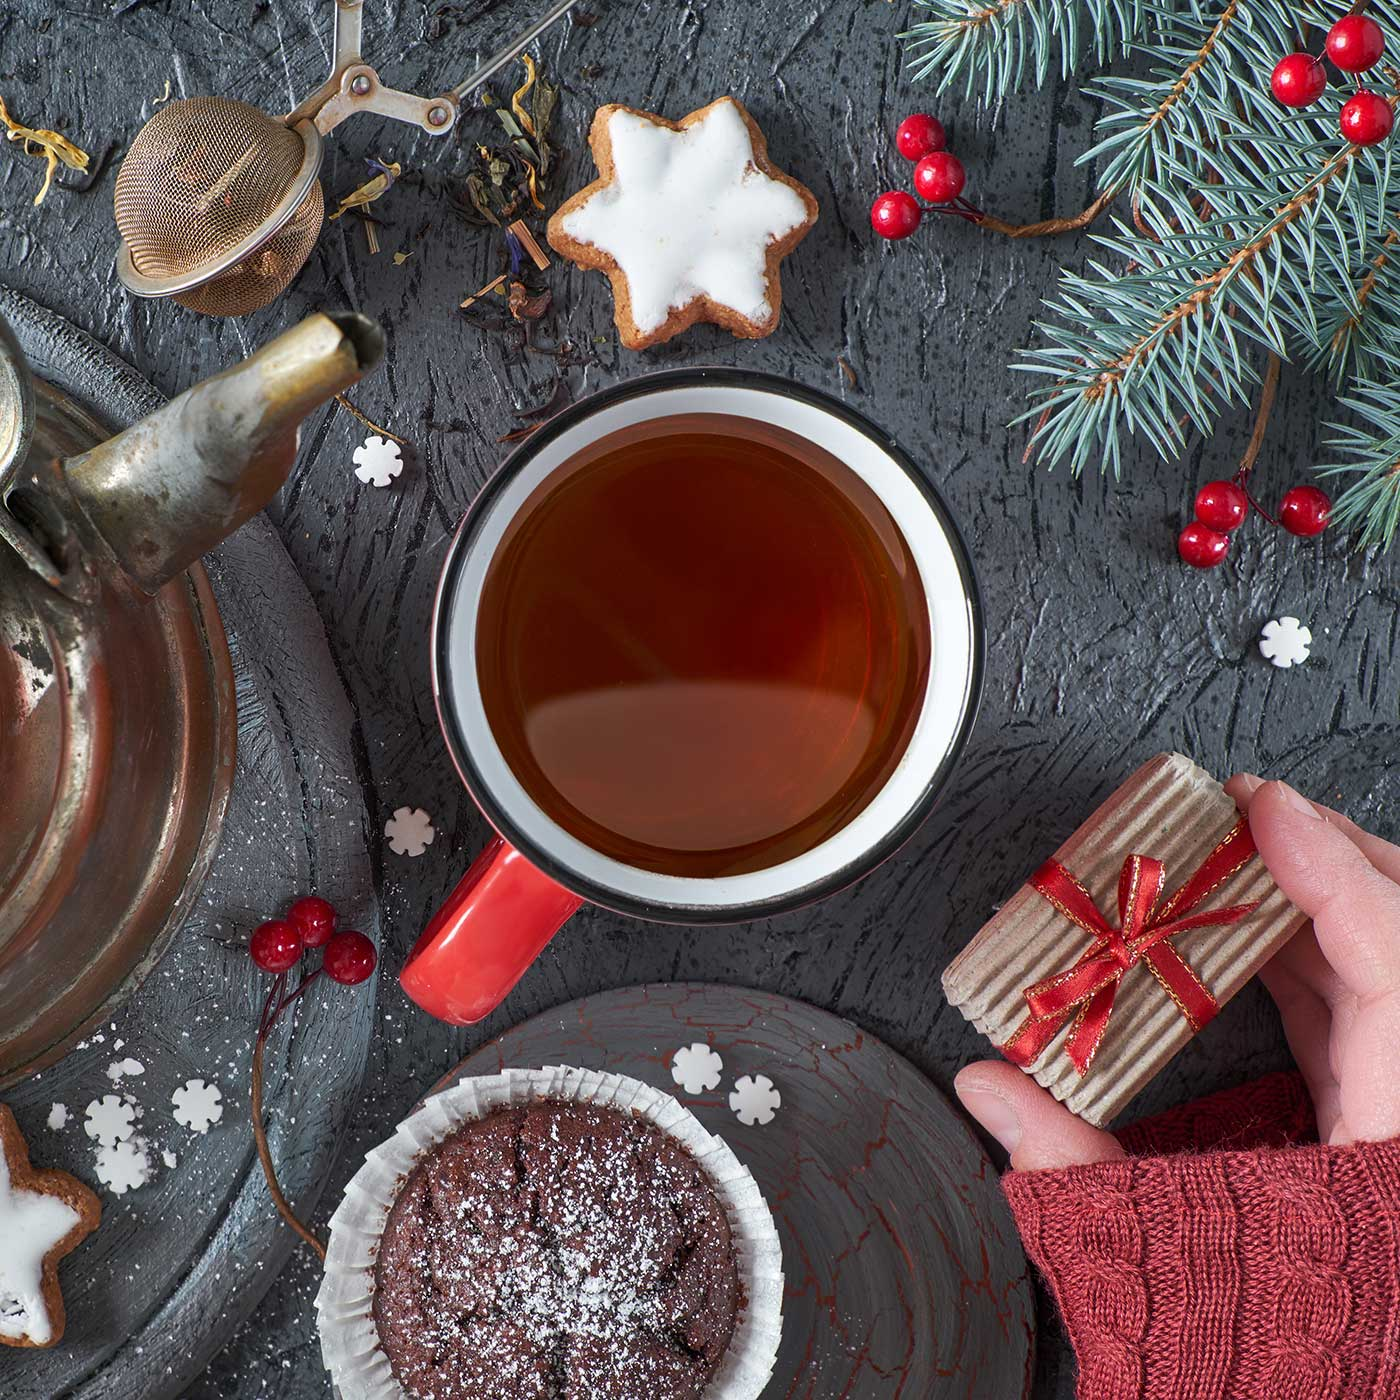 How to Choose the Best Tea Subscription Box